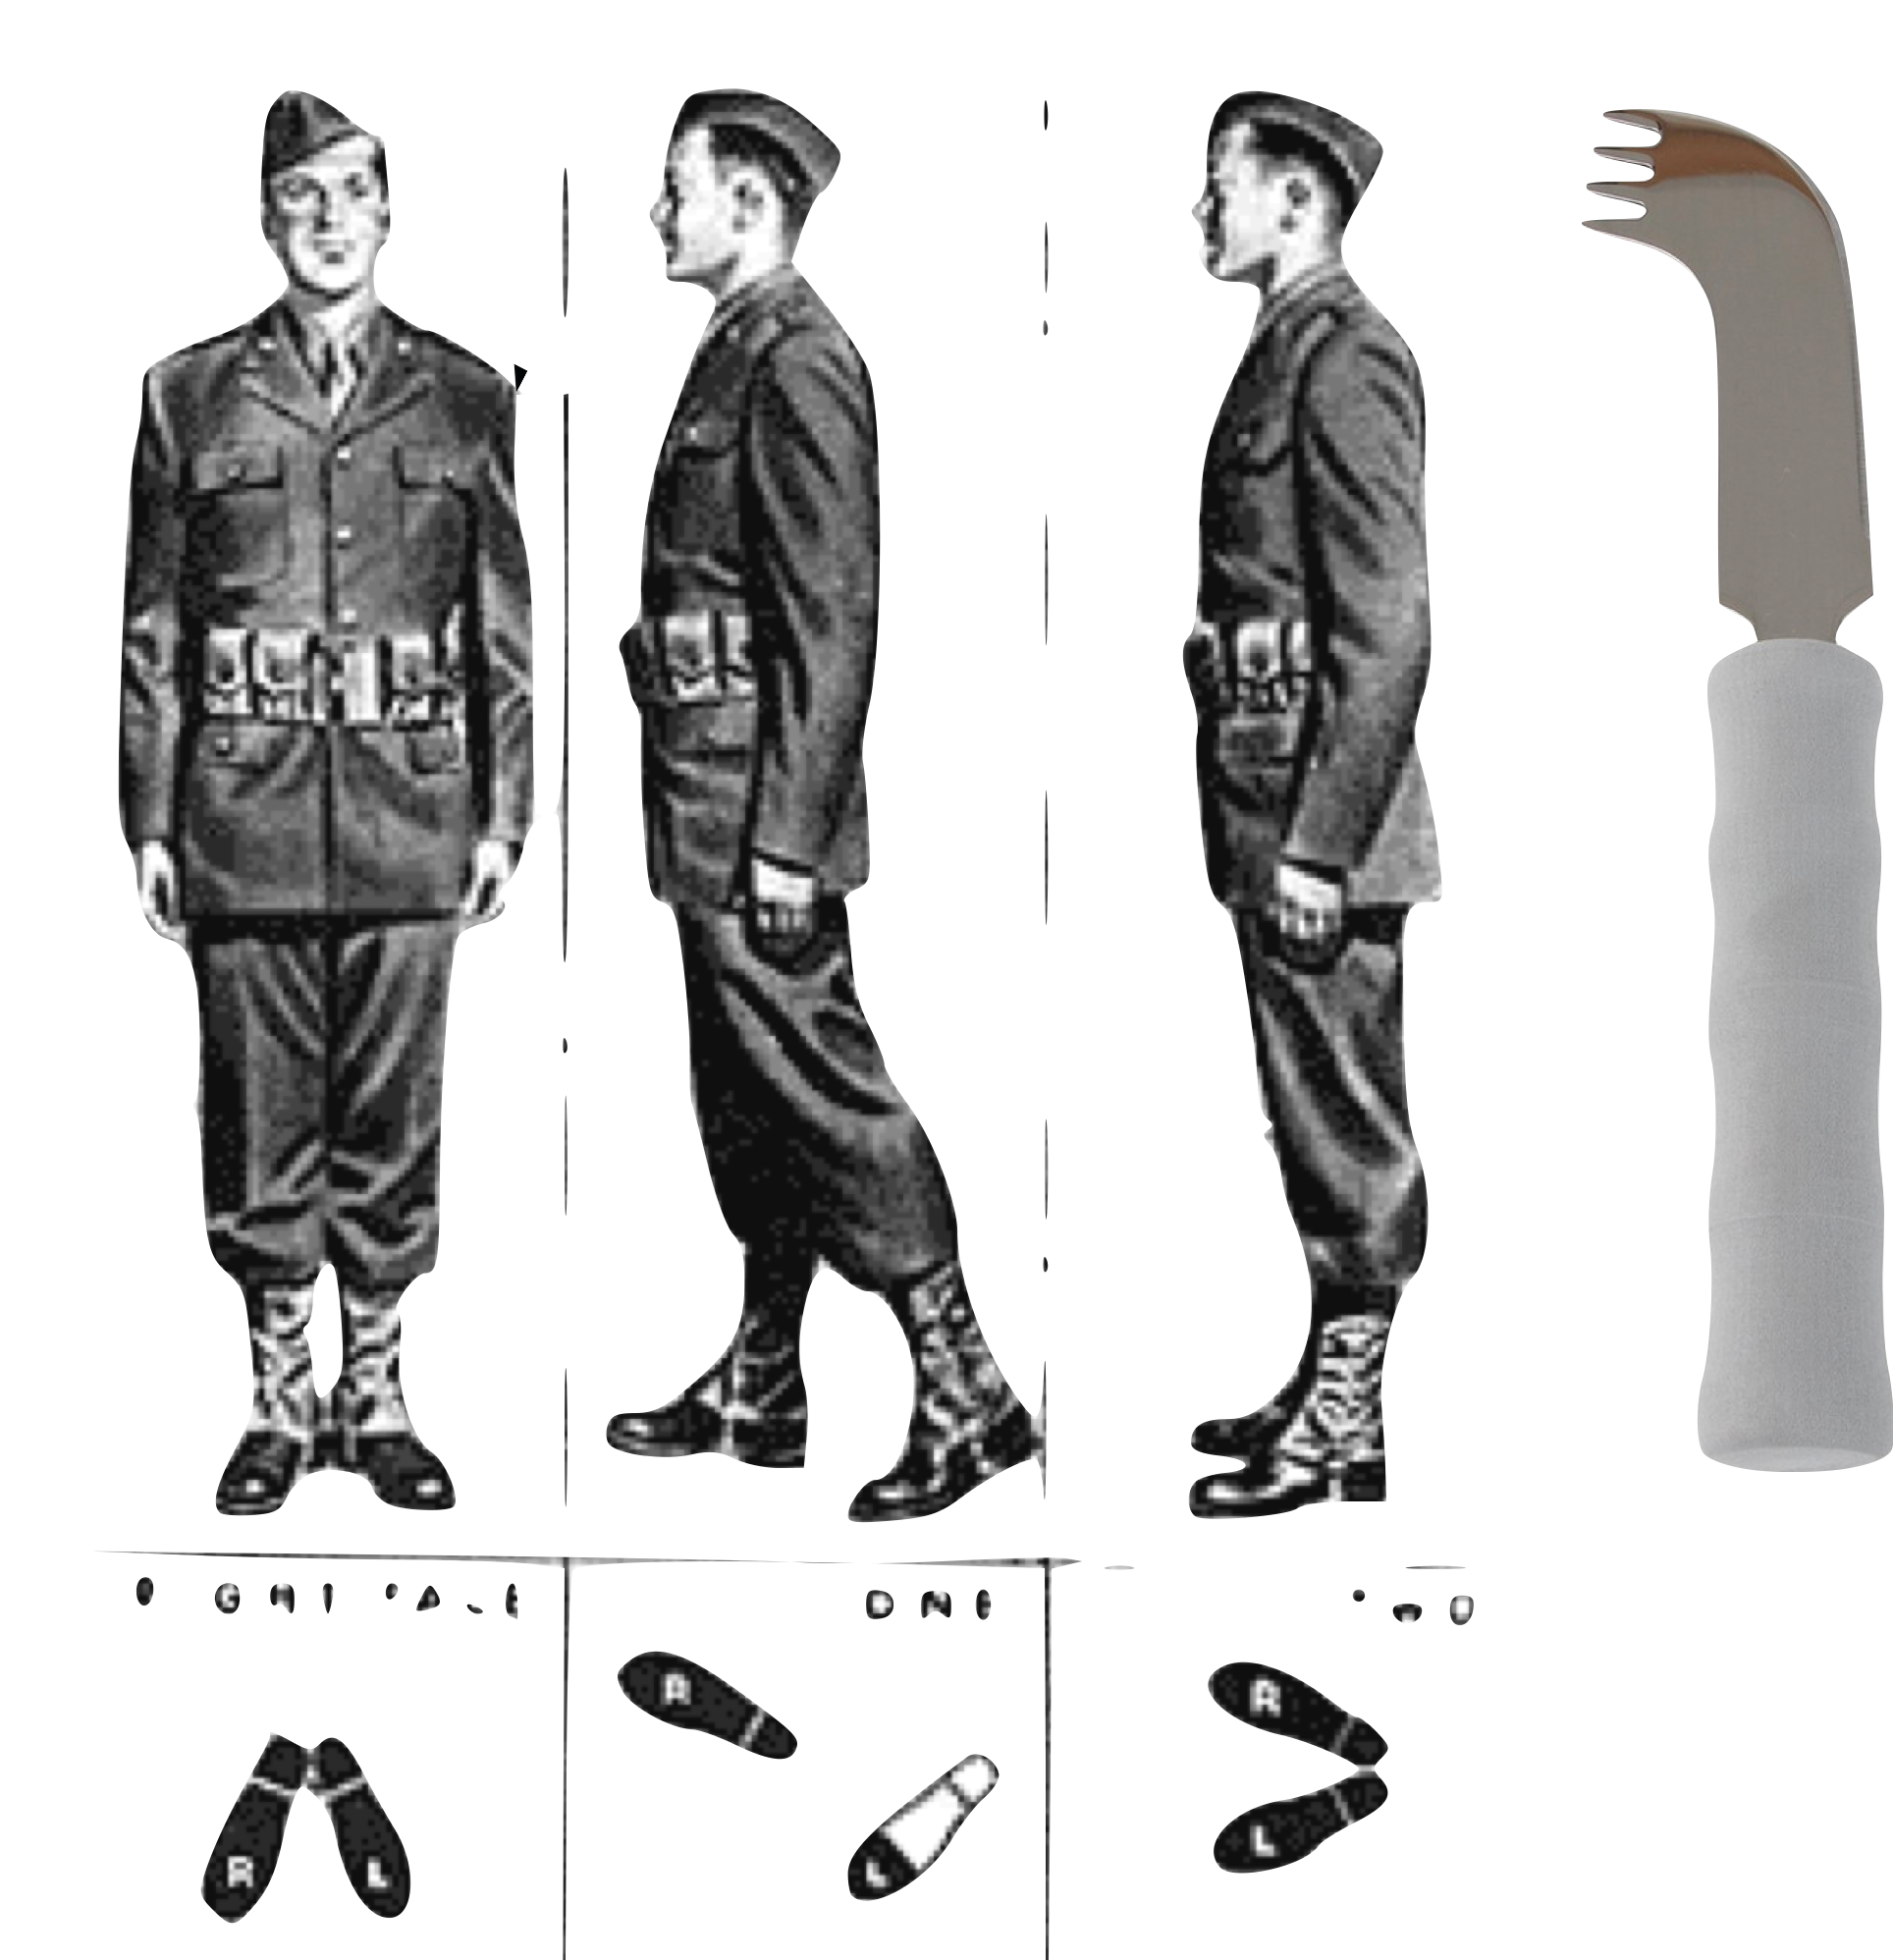 A cut out of three soldiers, followed by a hybrid knife/spoon